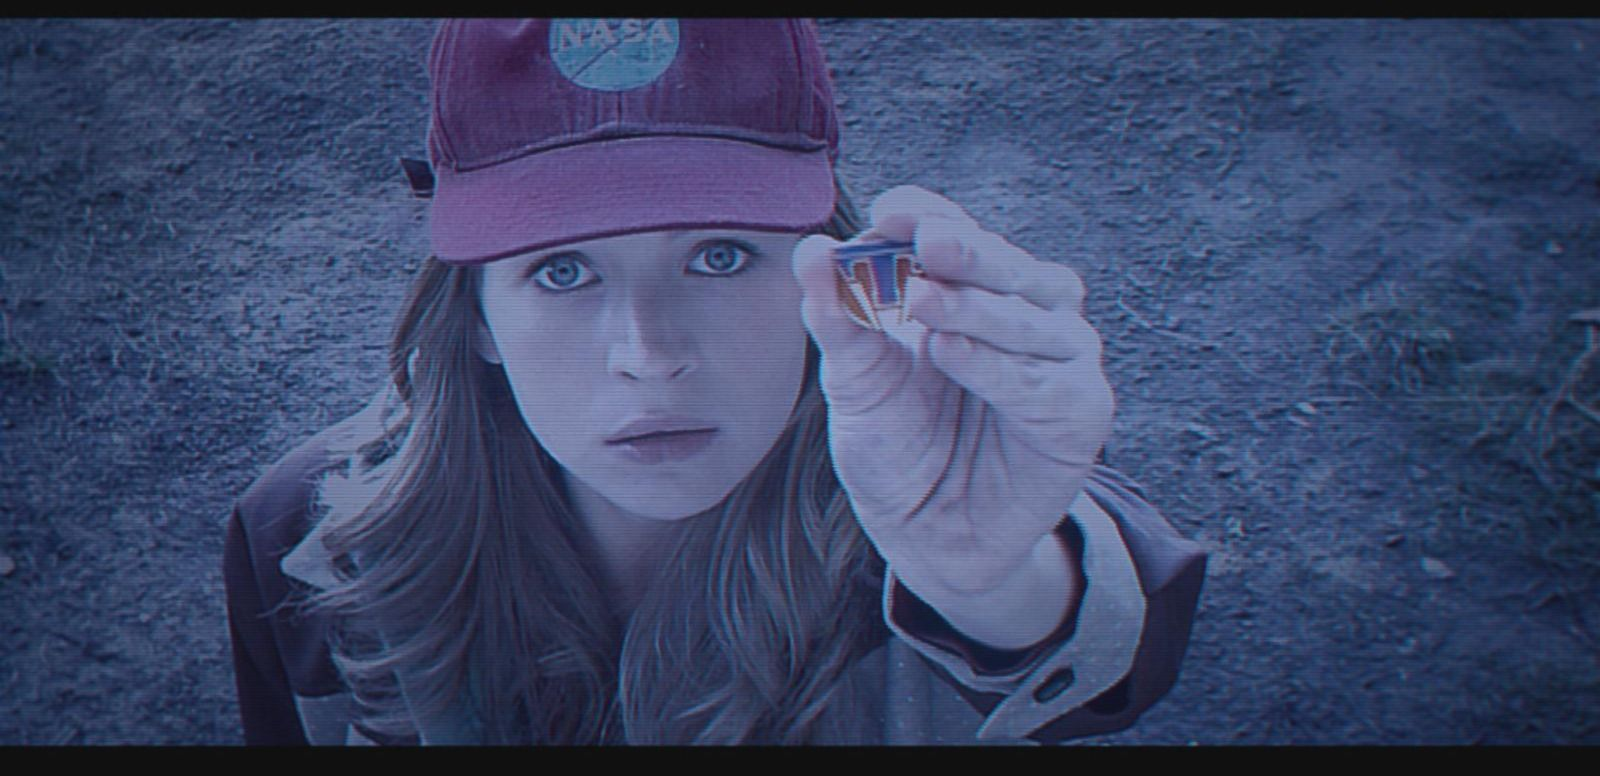 VIDEO: New Trailer for Disney's Tomorrowland